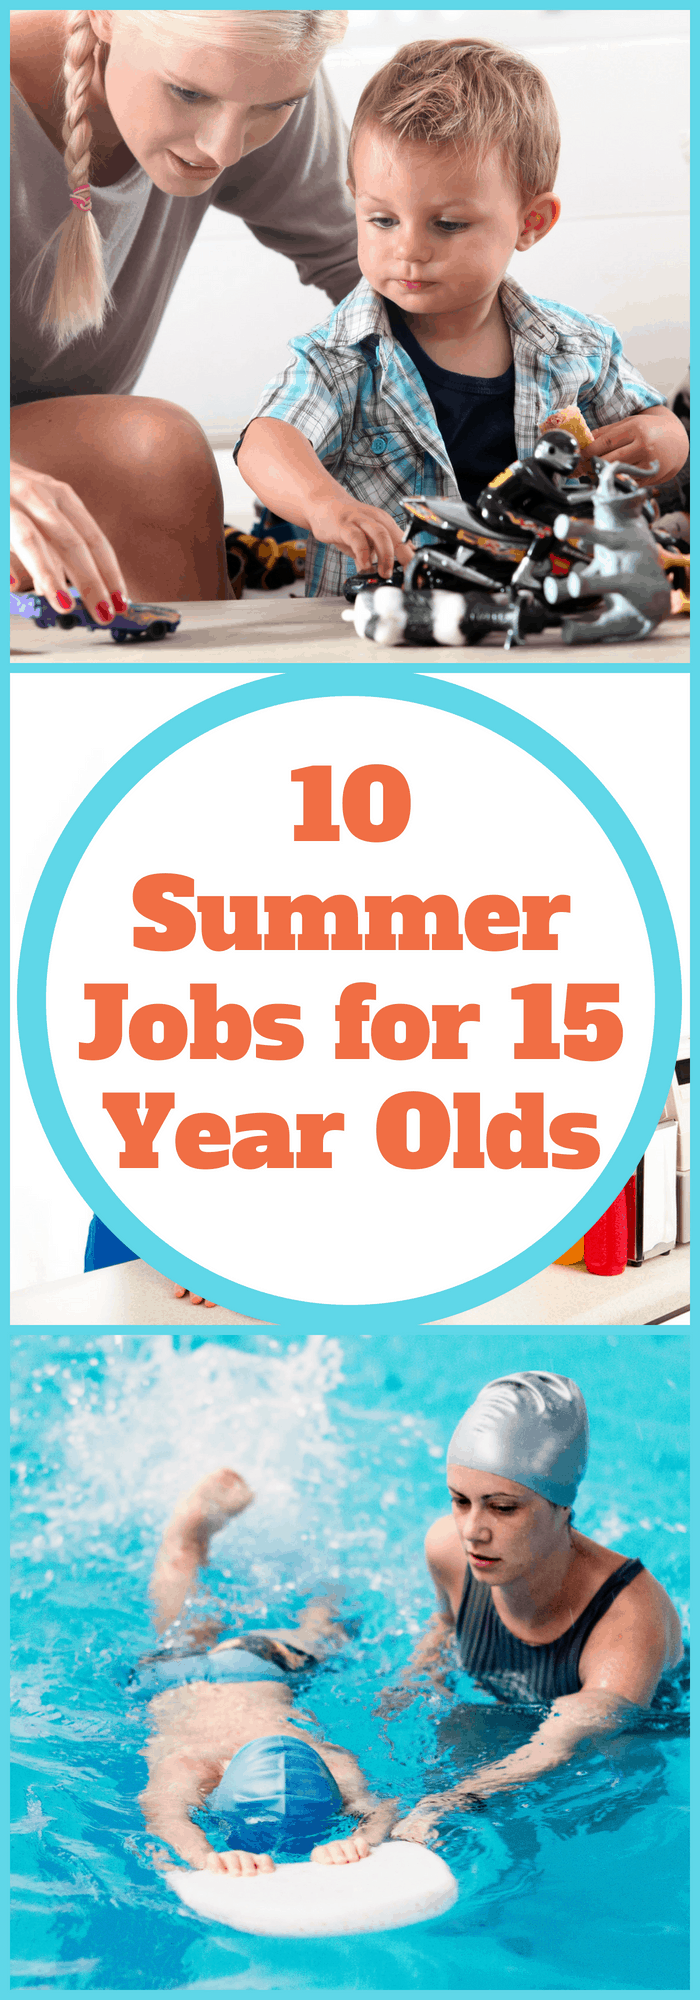 Summer Jobs for 15-year-olds